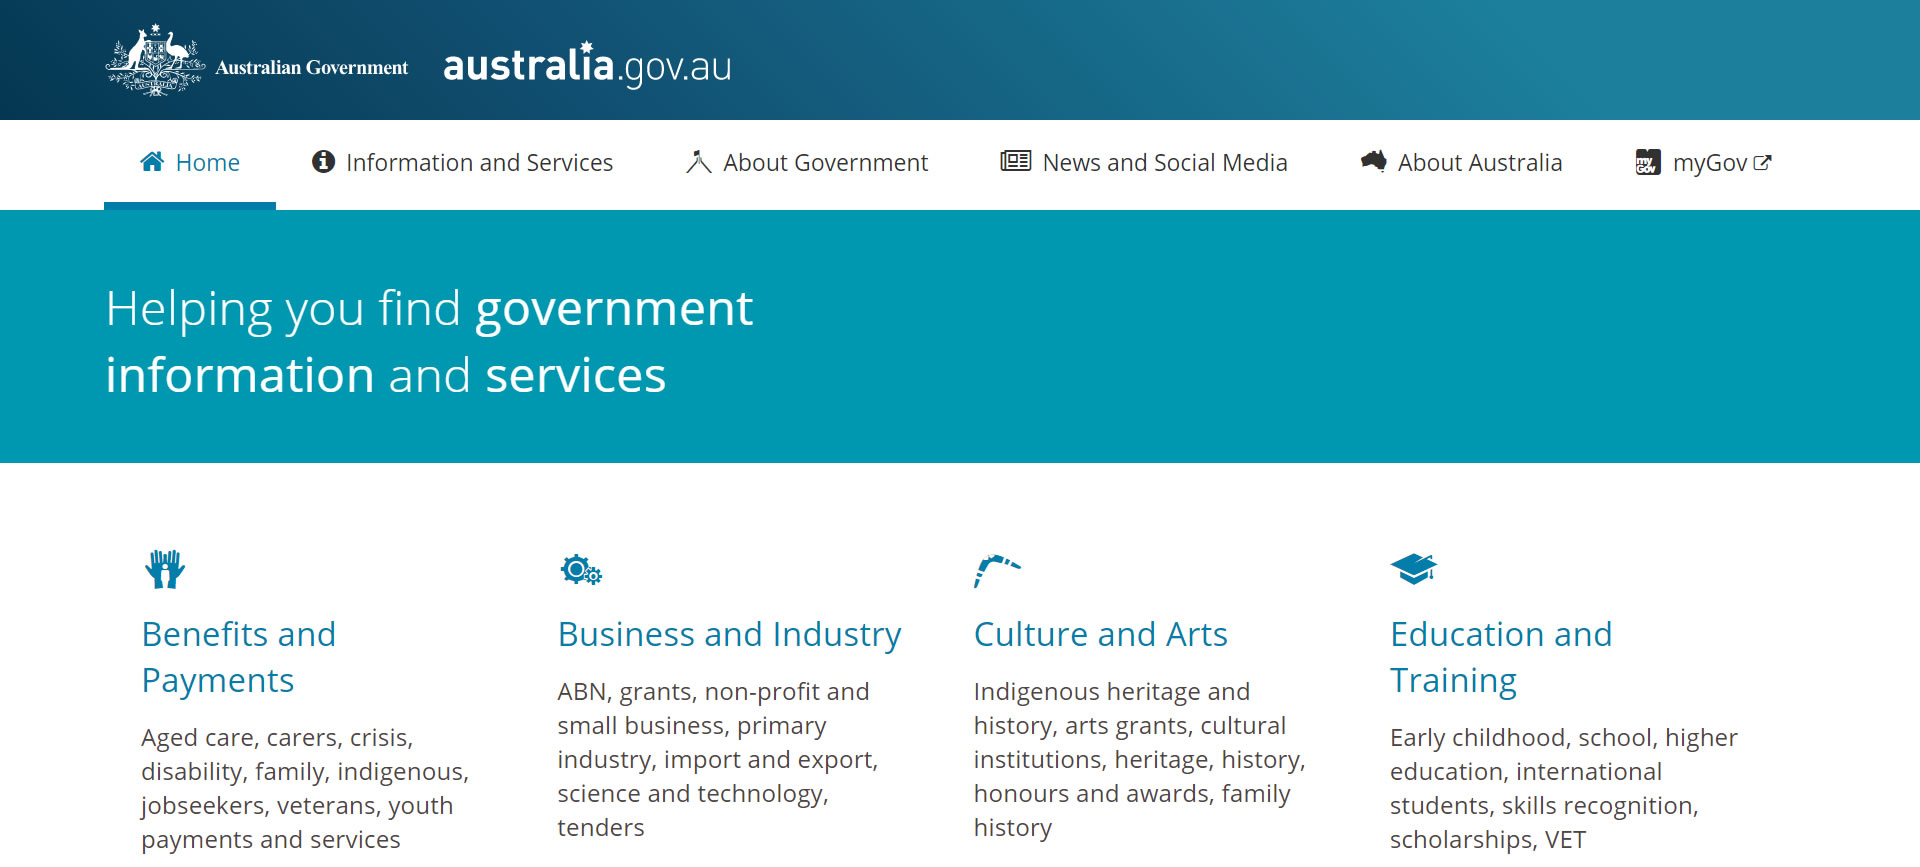 The Australian Government